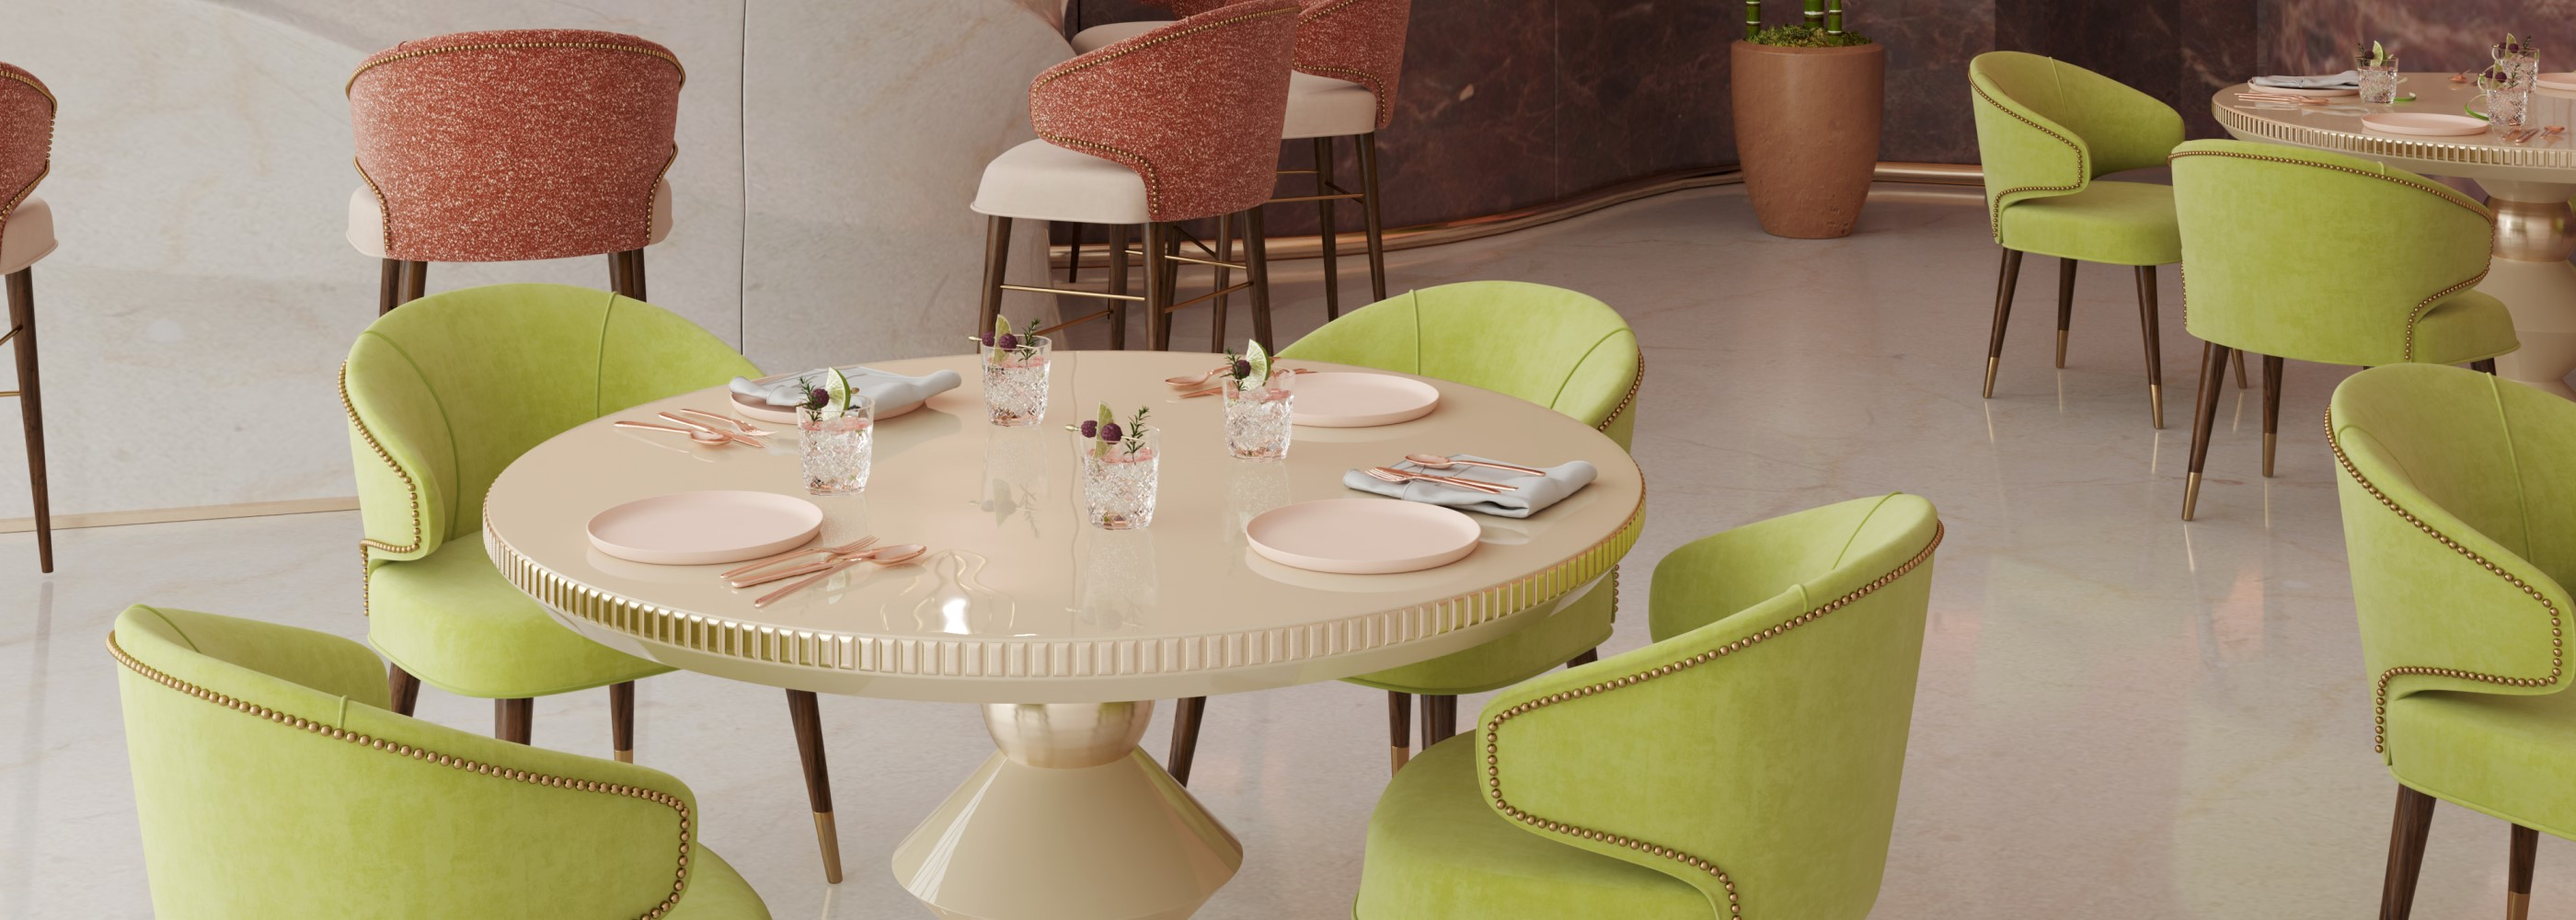 Tippi Dining chair 4